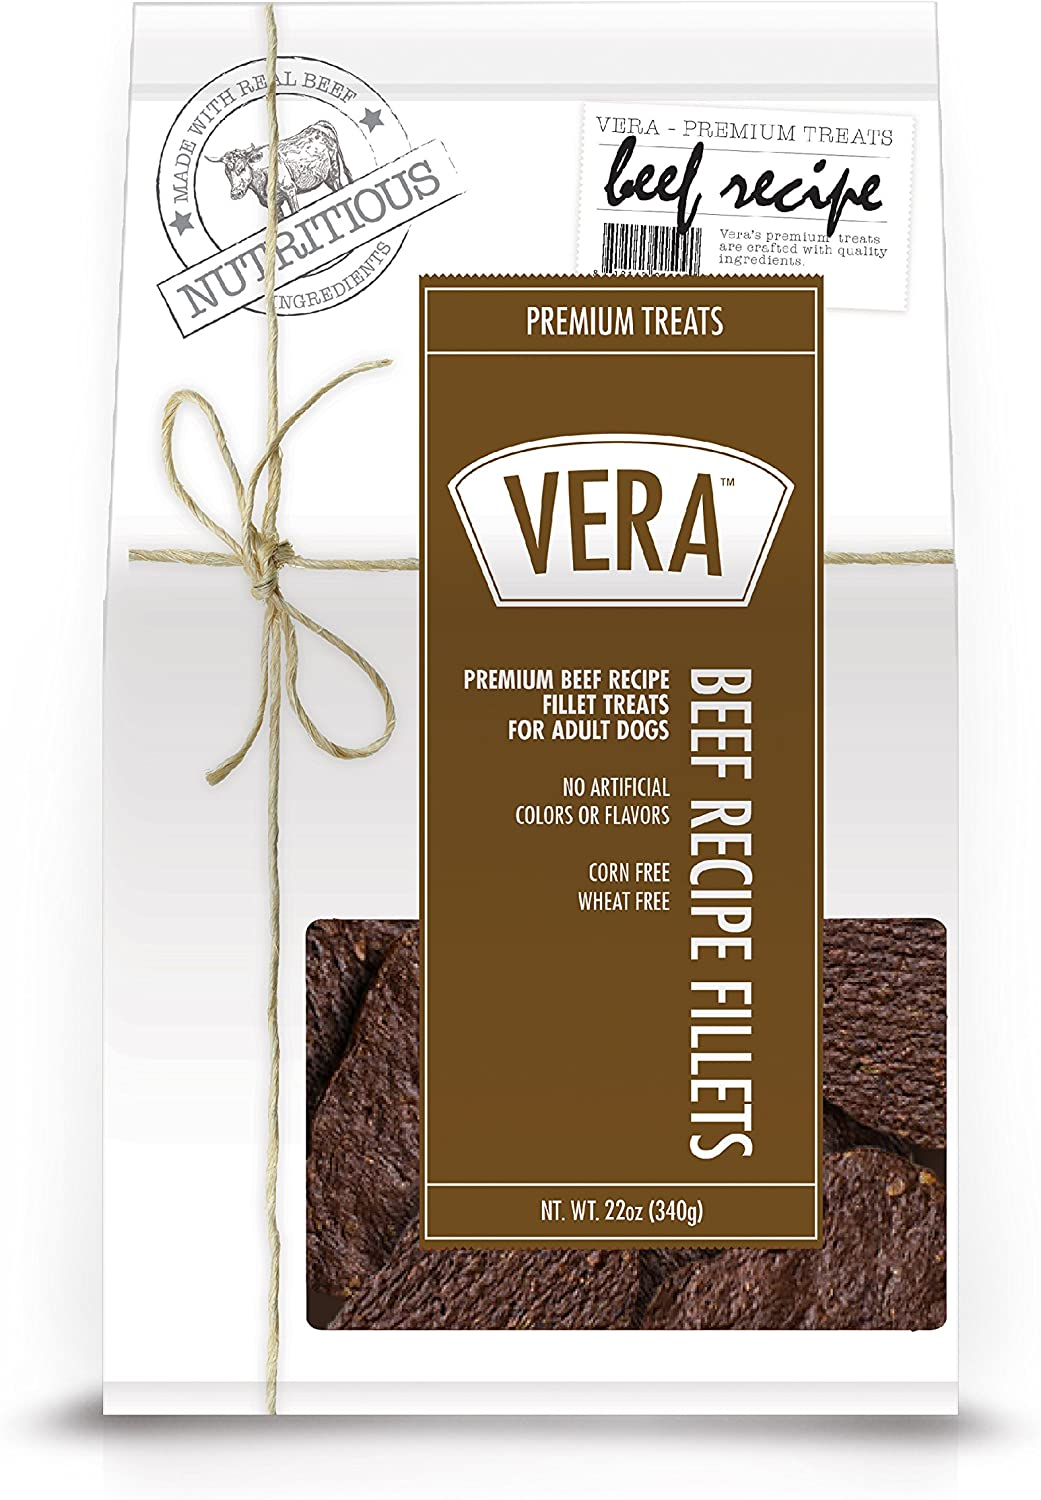 VERA Premium Wellness Treats for Dogs